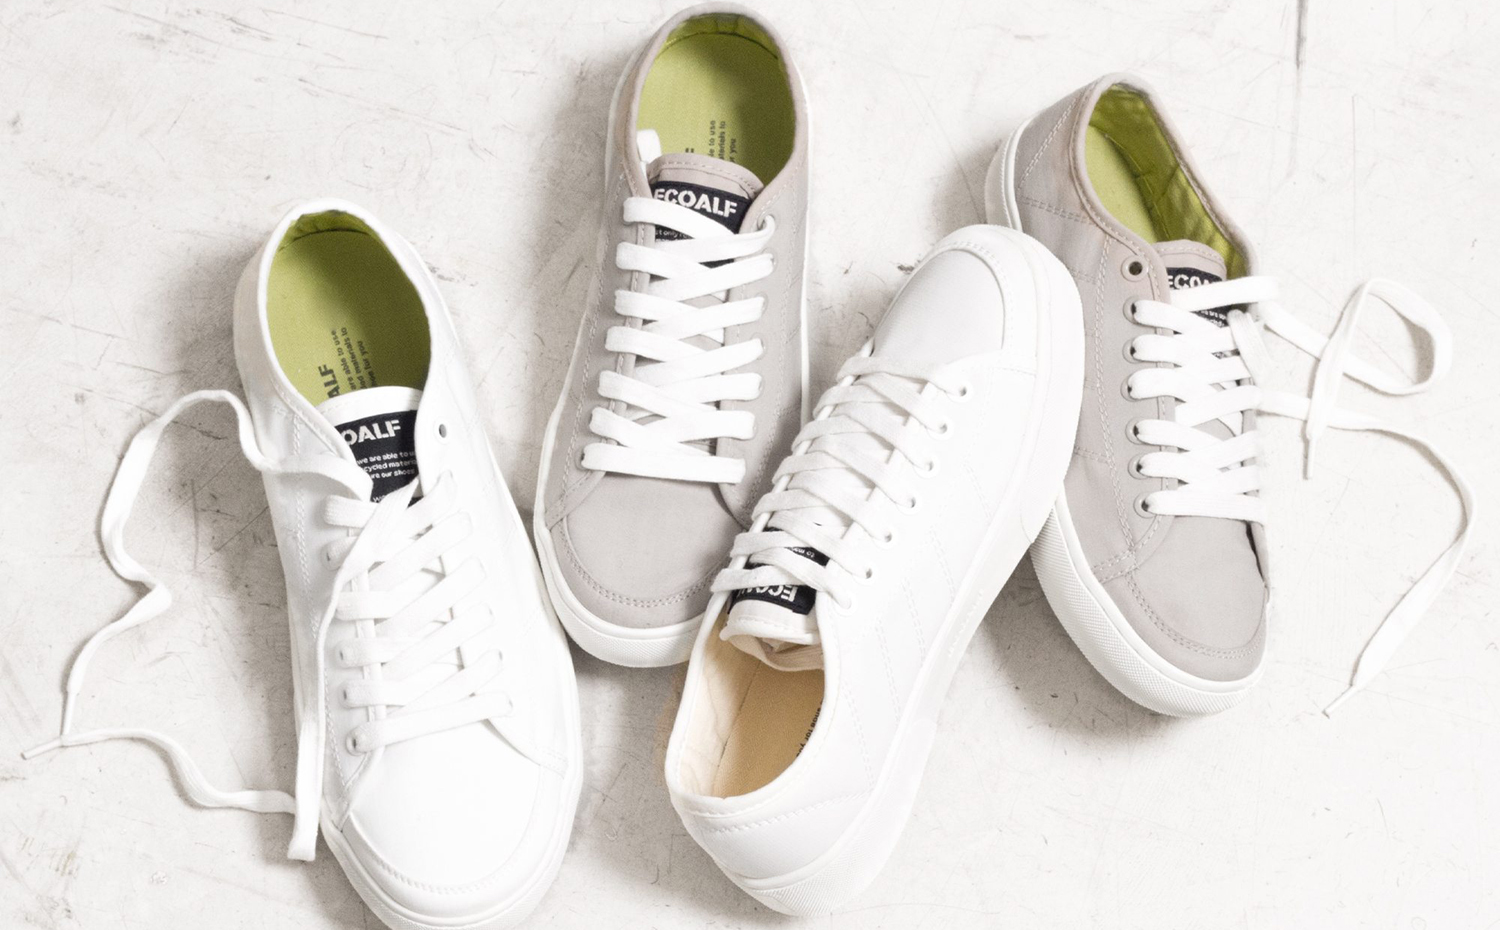 ecoalf recycled fabrics raw materials shoes white linen. Zapatillas fabricadas a partir de caucho reciclado, de Ecoalf